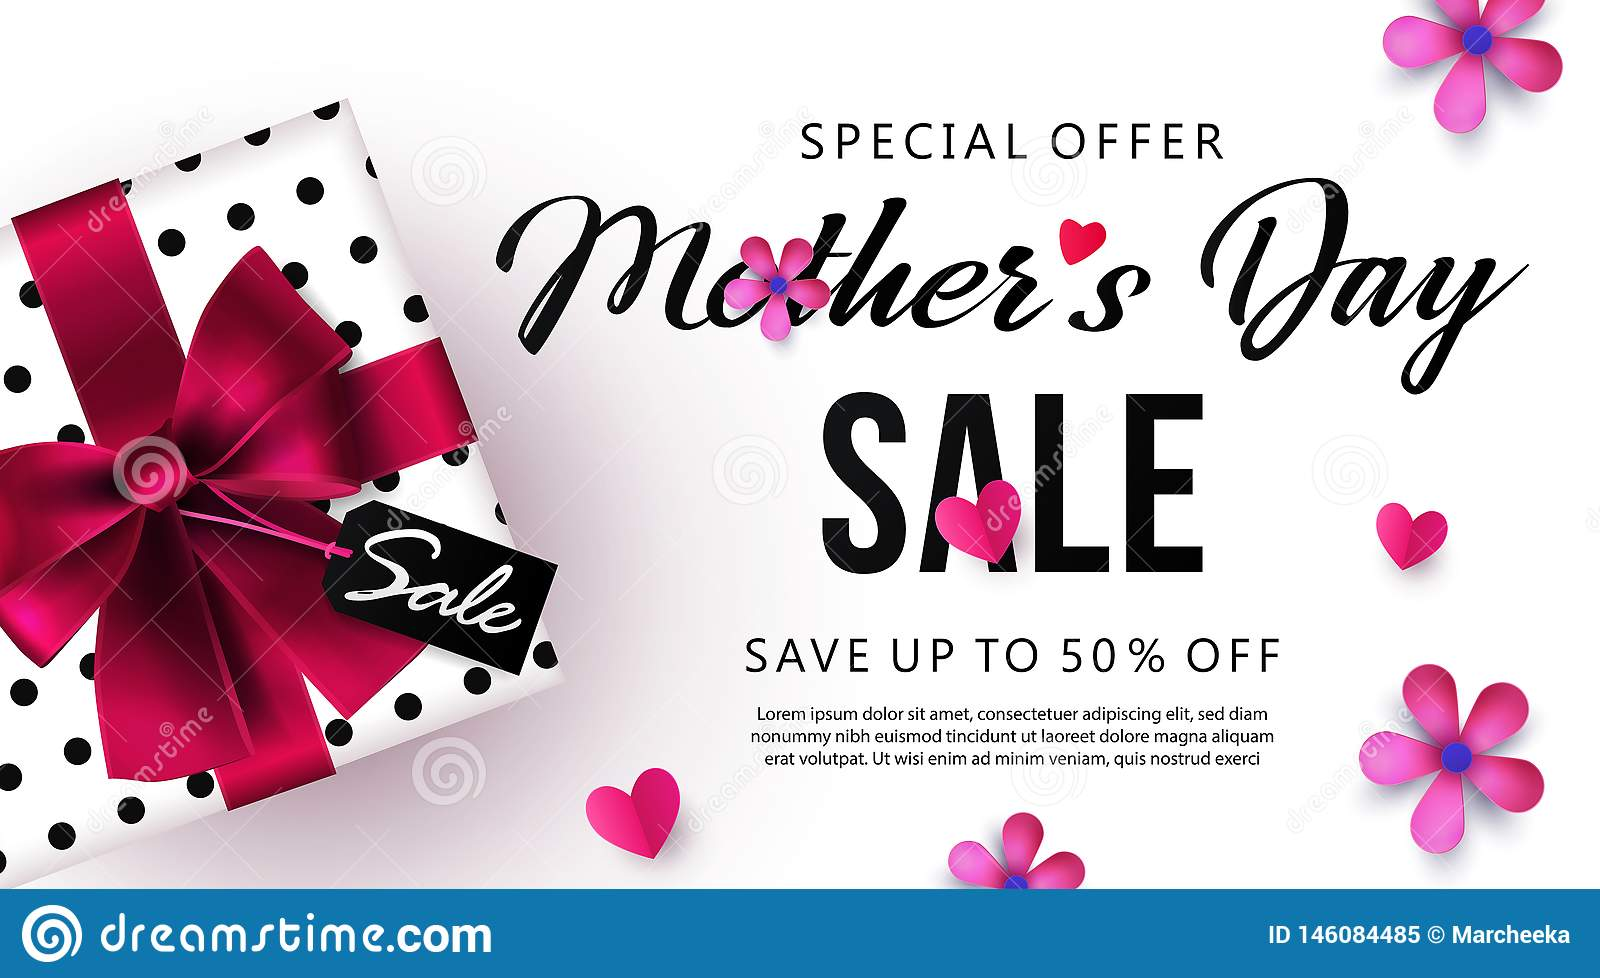 Mothers Day sale banner or poster design with beautiful gift box, paper hearts and flowers